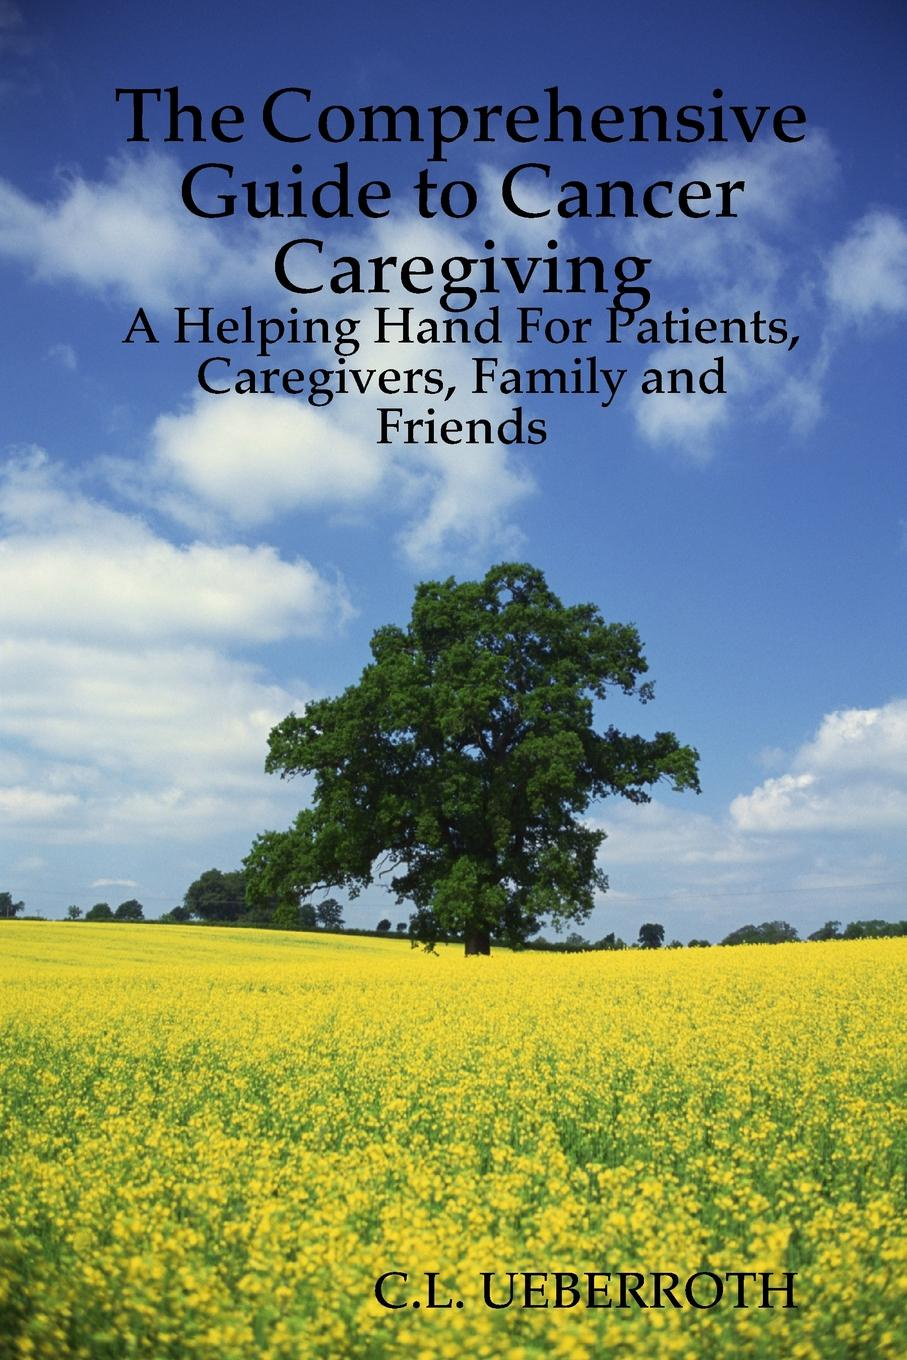 C.L. Ueberroth The Comprehensive Guide to Cancer Caregiving. A Helping Hand For Patients, Caregivers, Family and Friends недорго, оригинальная цена